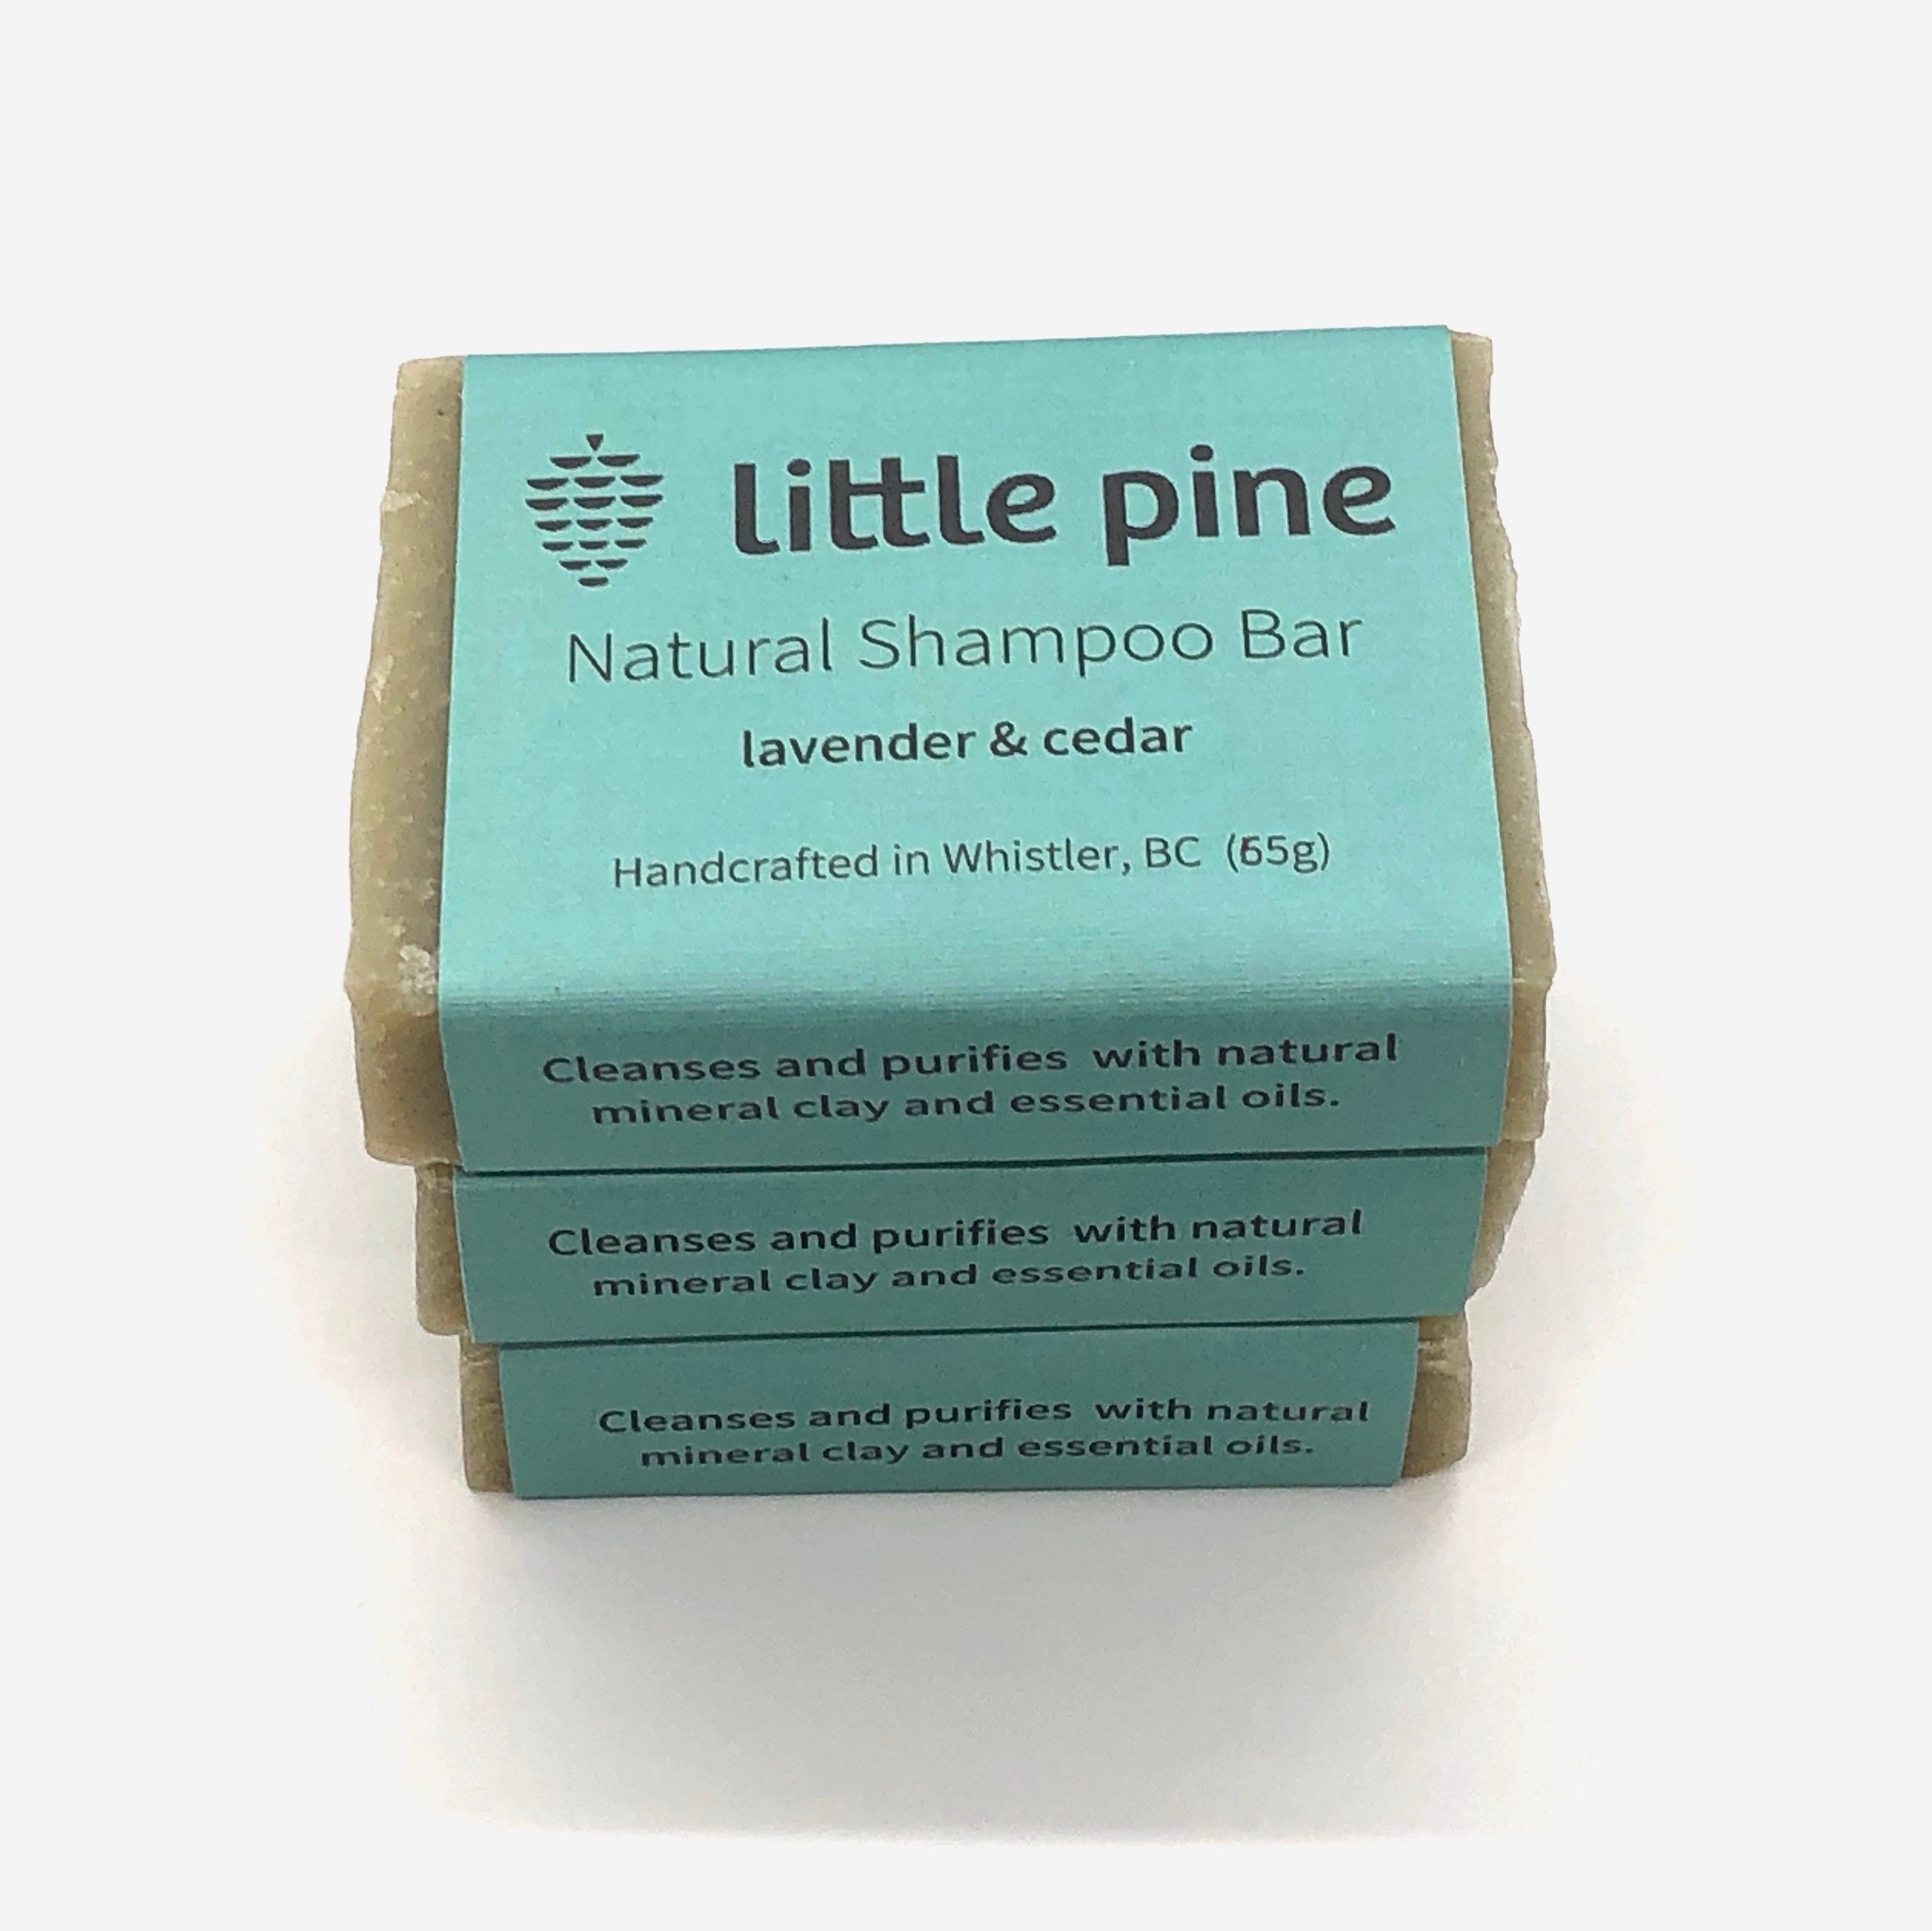 Natural Shampoo Bar